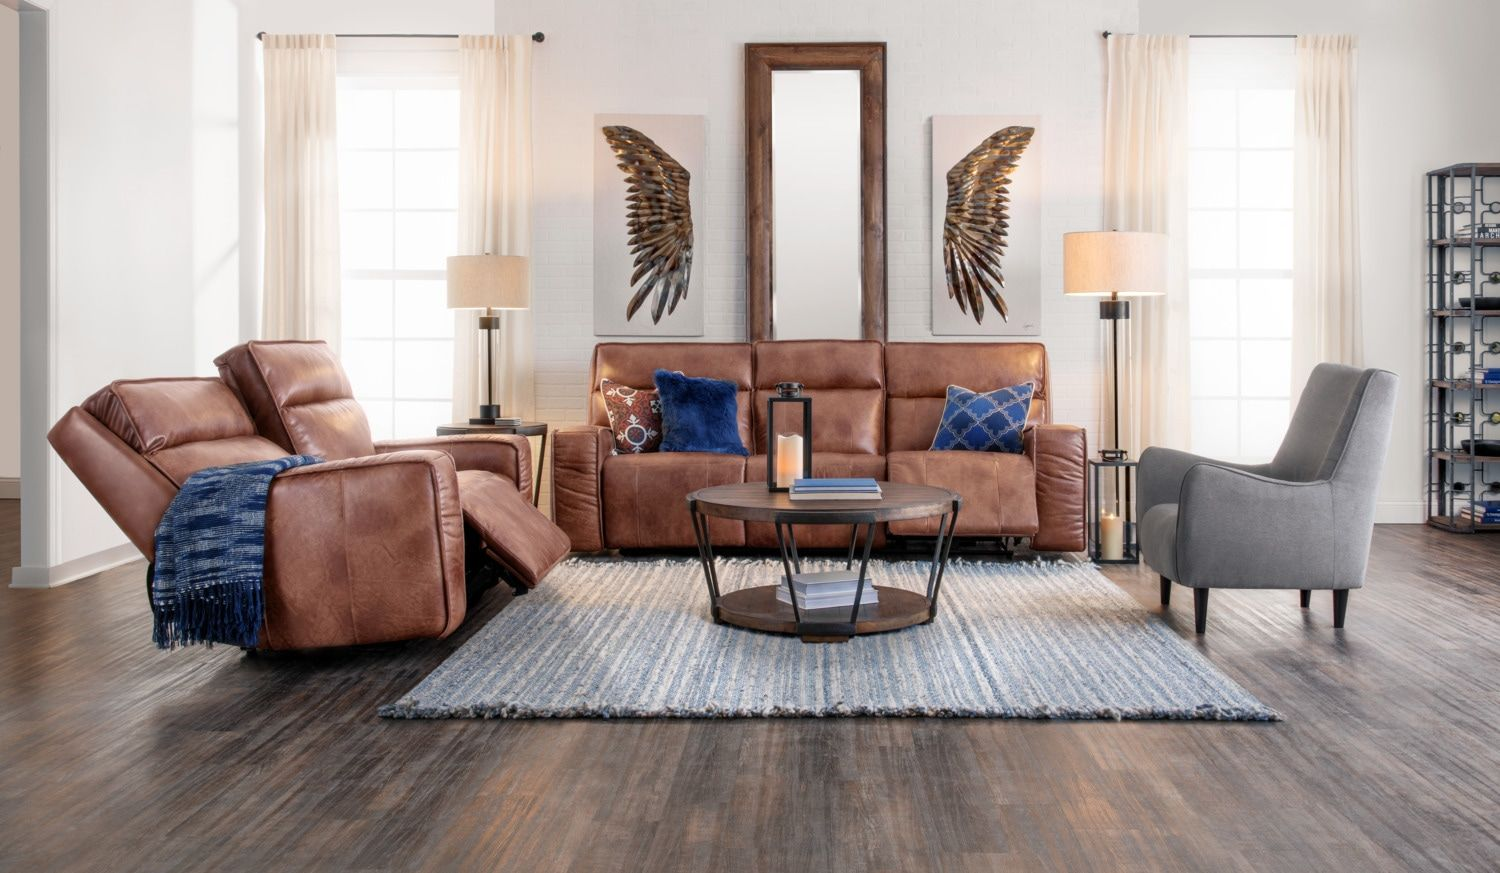 10+ Amazing Value City Living Room Chairs